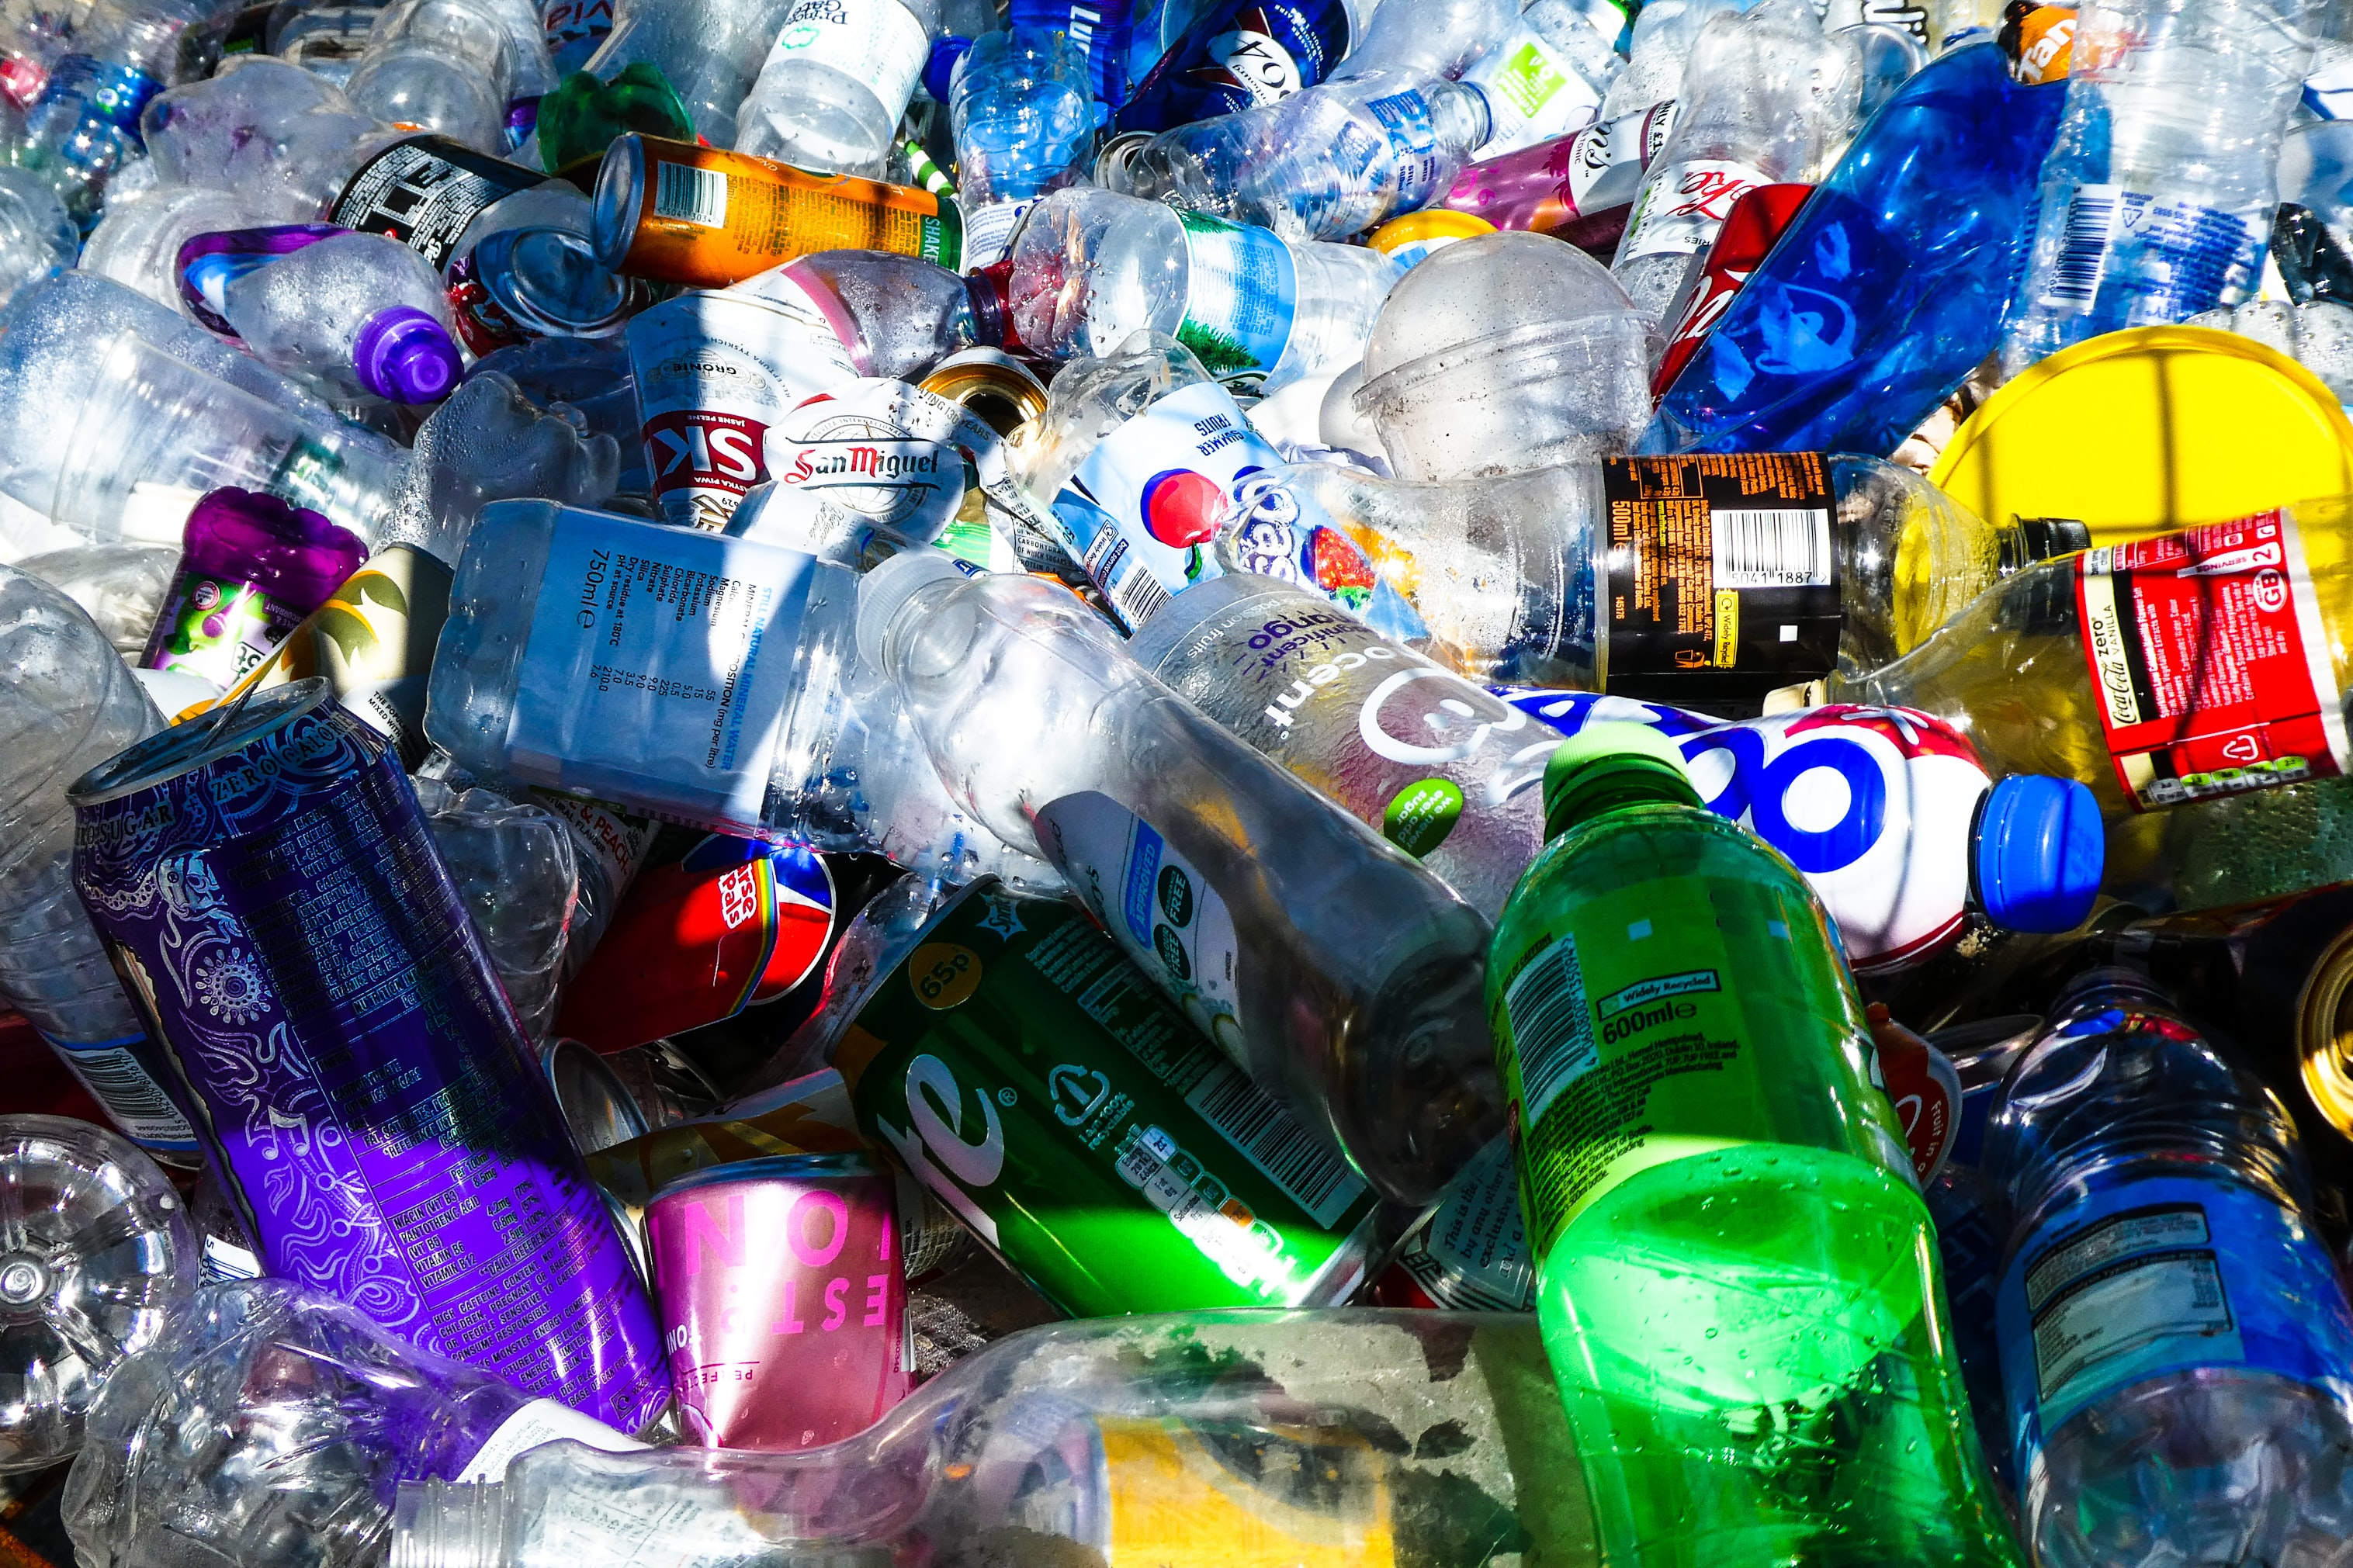 Stock   Packaging   Plastic bottles, recycling, waste